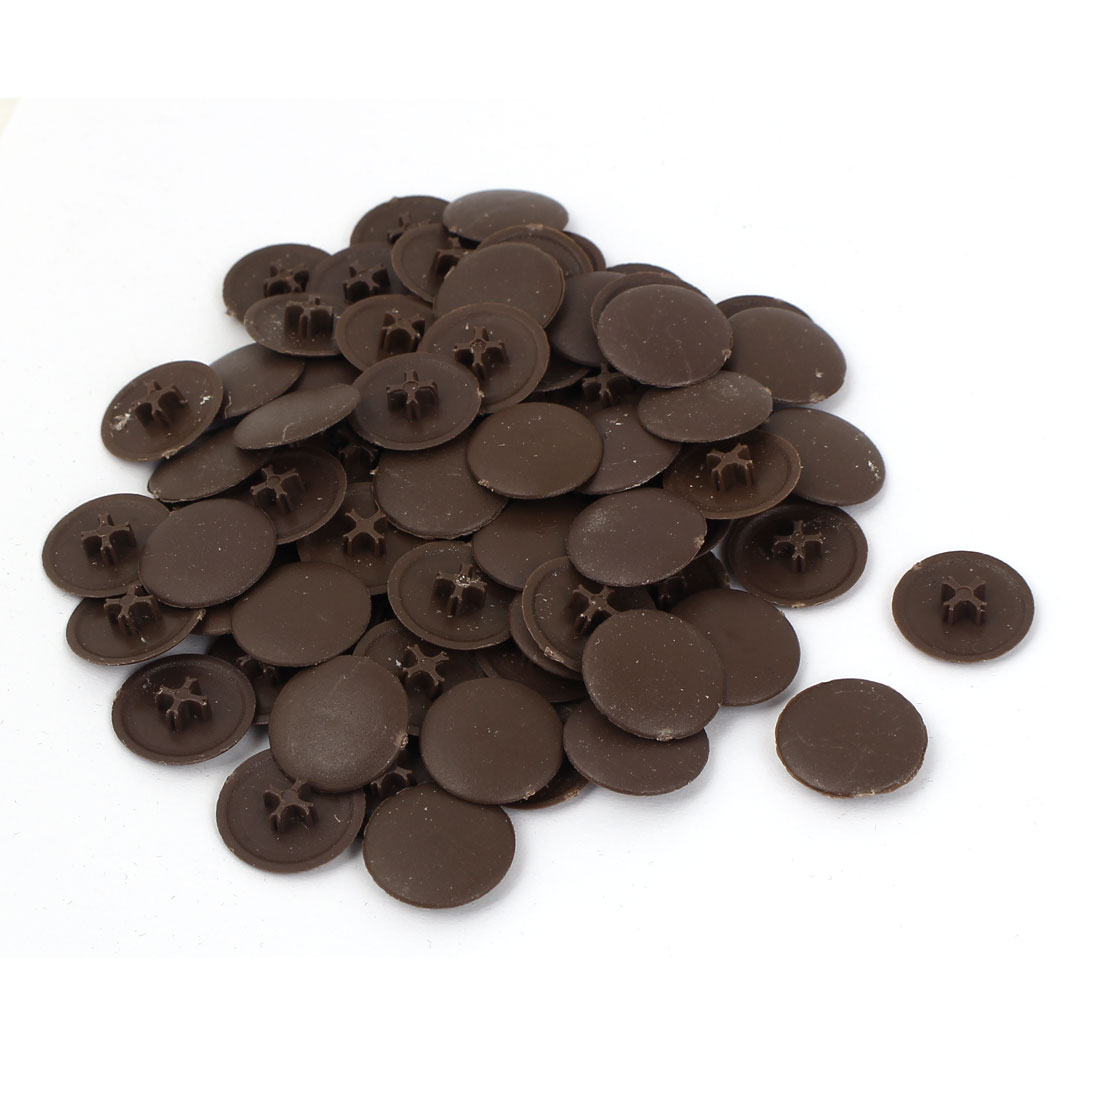 Uxcell 6mm Screws Round Brown Plastic Decoration Cap Covers (80-pack)